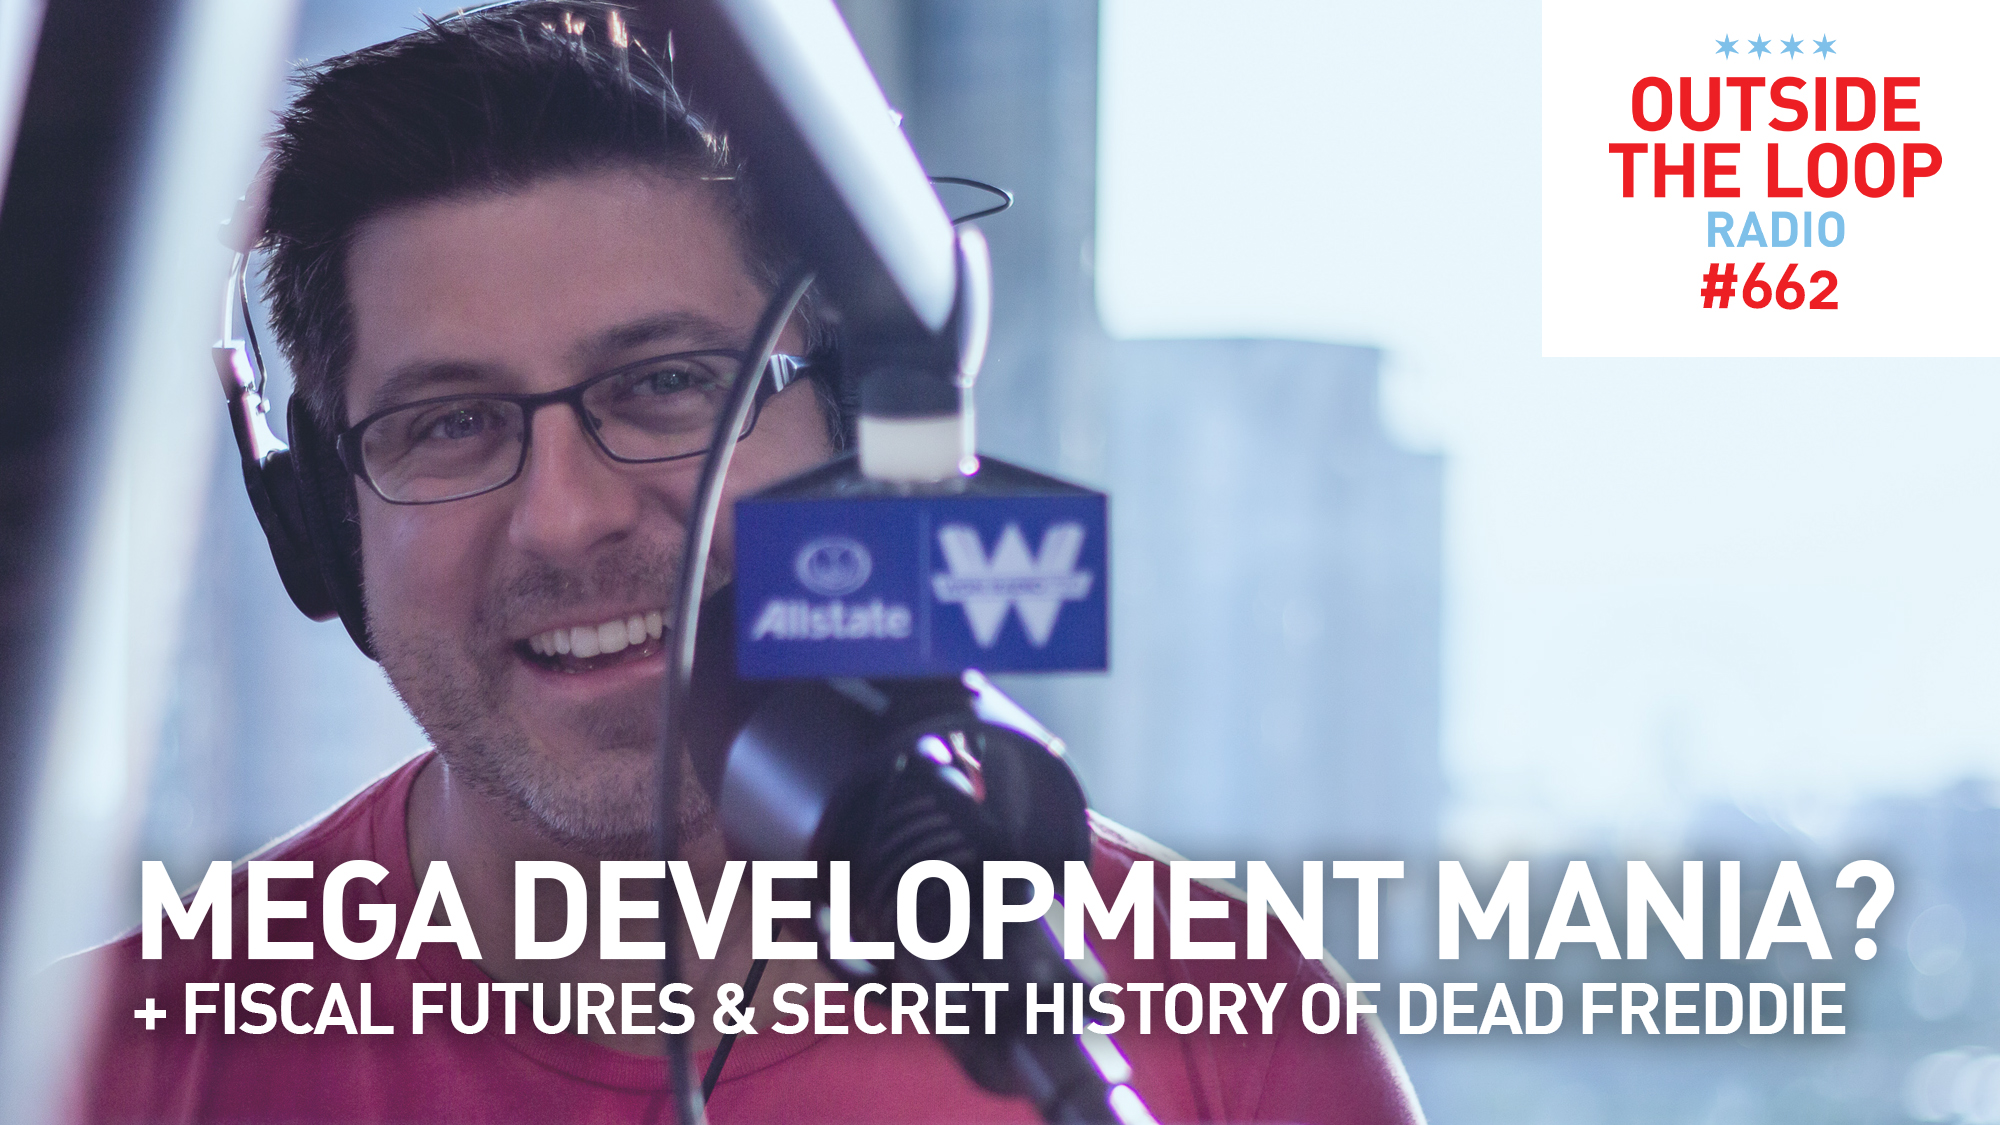 Mike Stephen discusses Chicago's obsession with mega-developments.